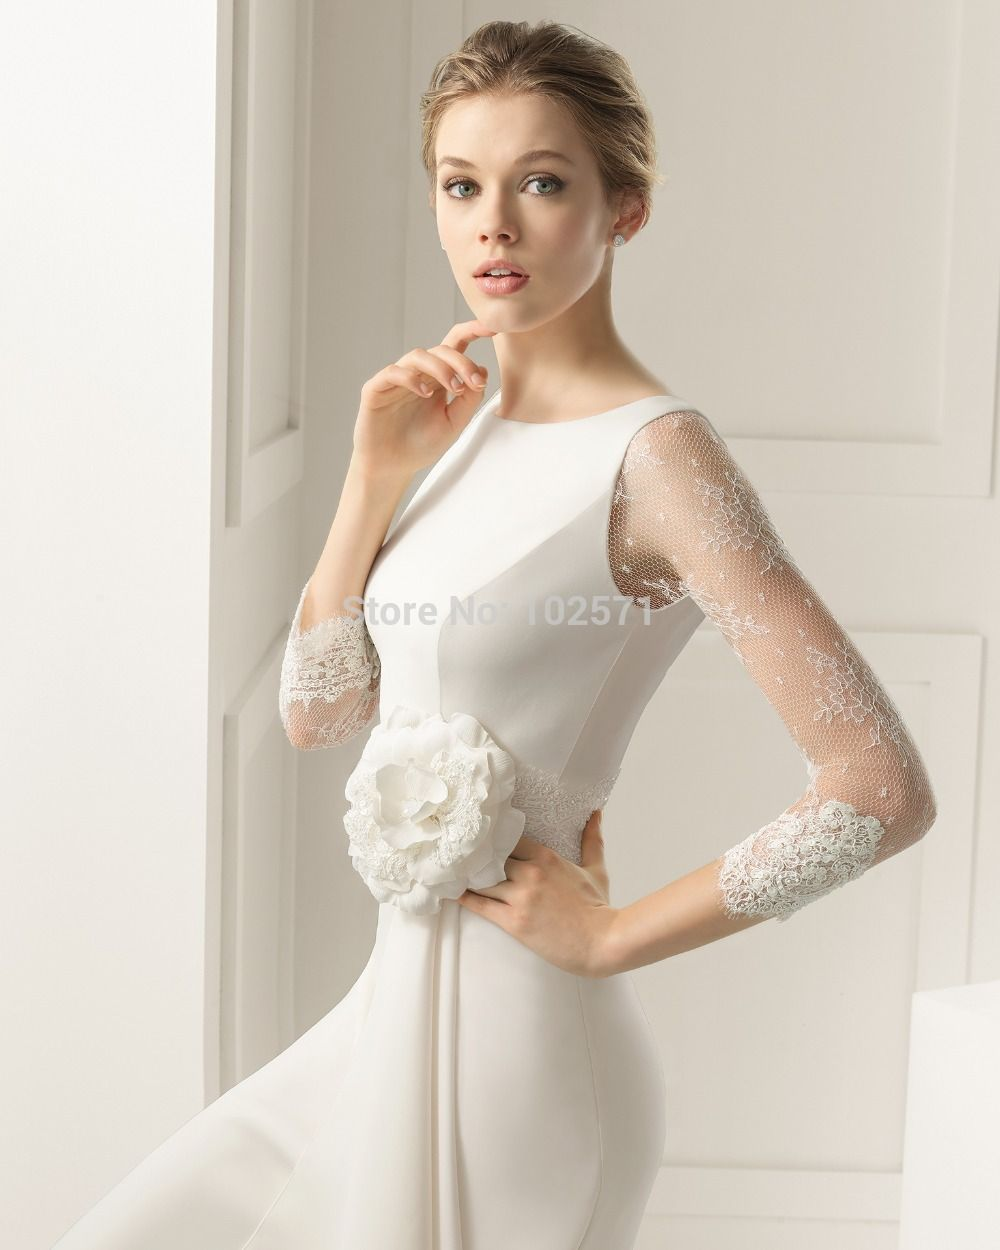 Cheap gown backless buy quality dress mesh directly from china